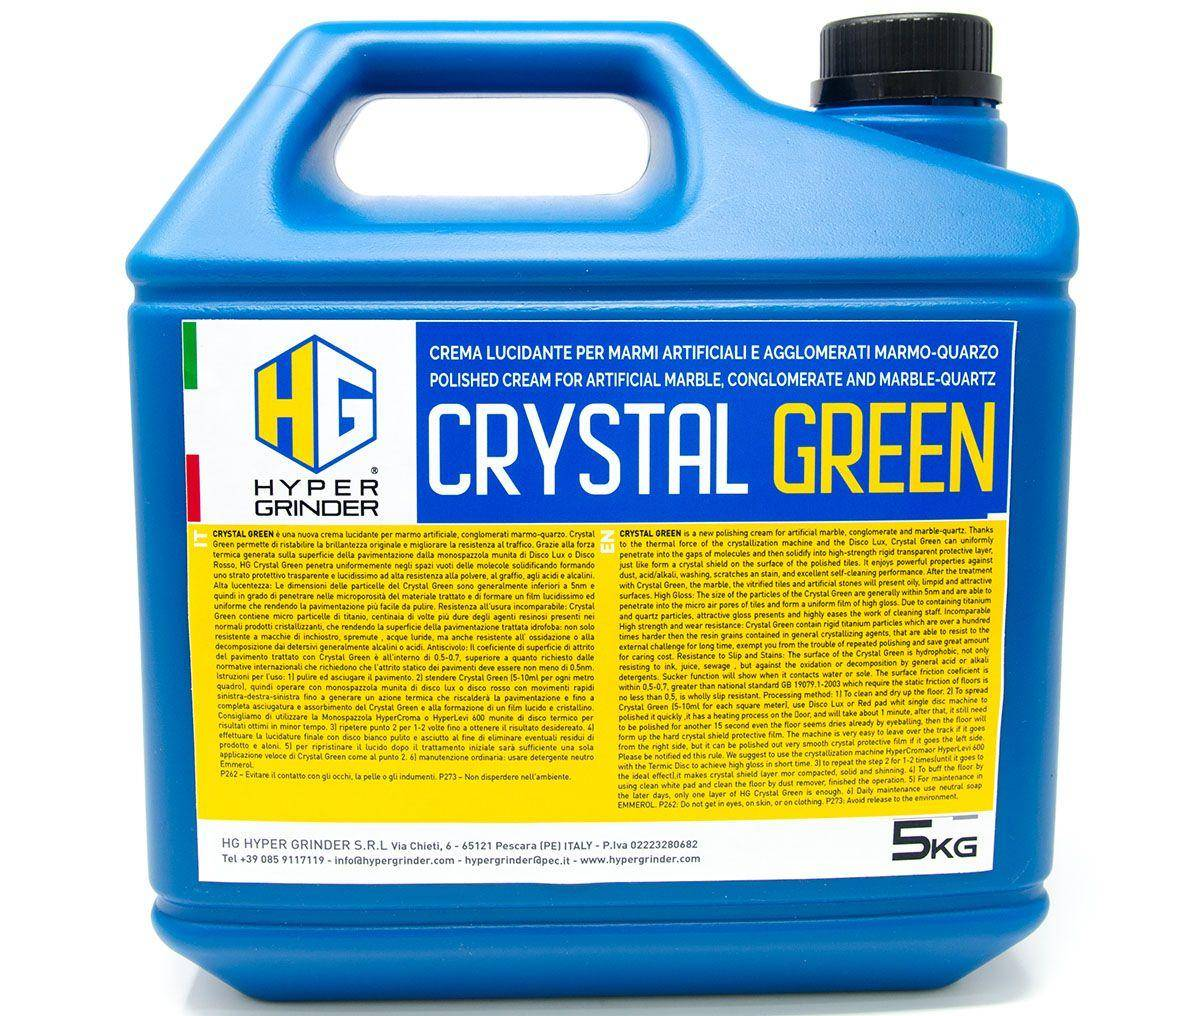 CRYSTALGREEN 1245